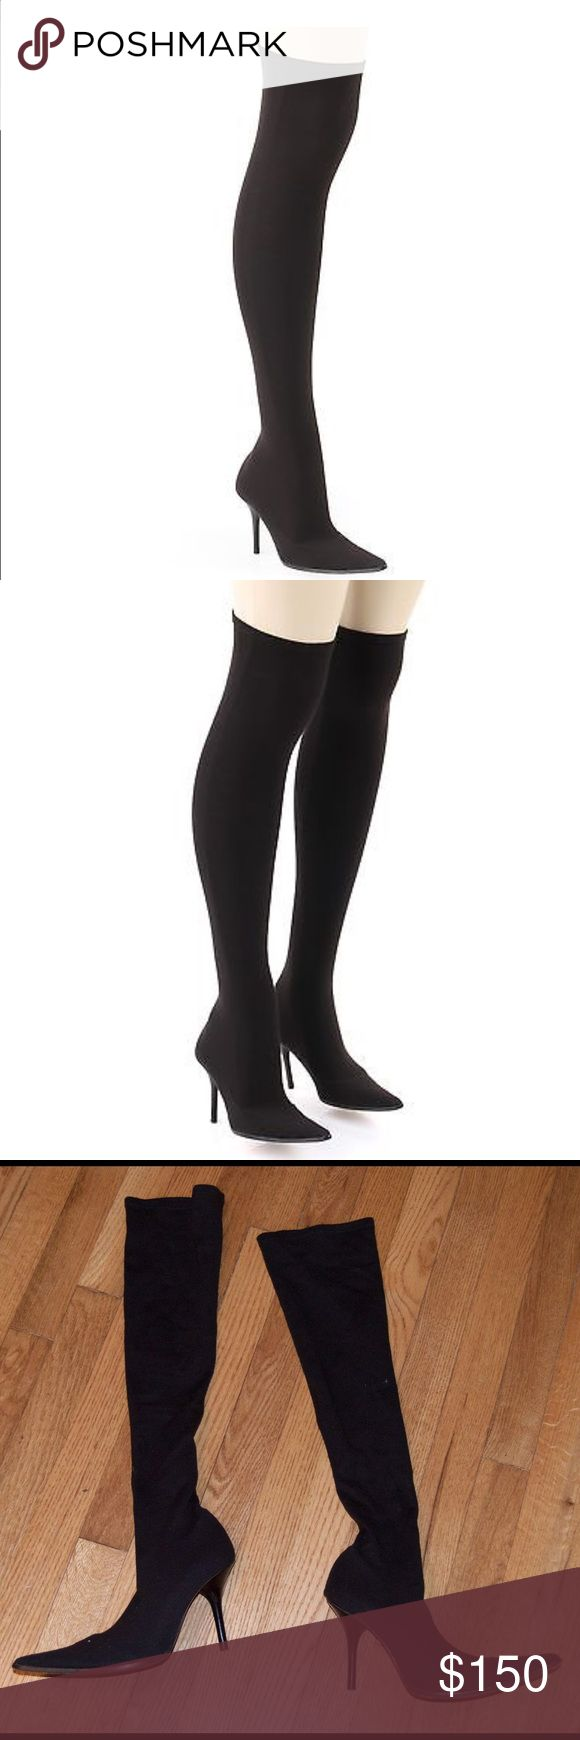 Michael Kors Black Stretch Knee High Boots Michael Kors black stretch knee high boots. Knee high stretch cotton Lycra blend fabric shaft that pula on like socks and fits very close to the leg. Pointed toe. Slim black stacked heel and leather sole. Insole leather. 3 1/2 inch heel. Size 7. No signs of wear. Never worn. Bundle and save. Michael Kors Shoes Heeled Boots